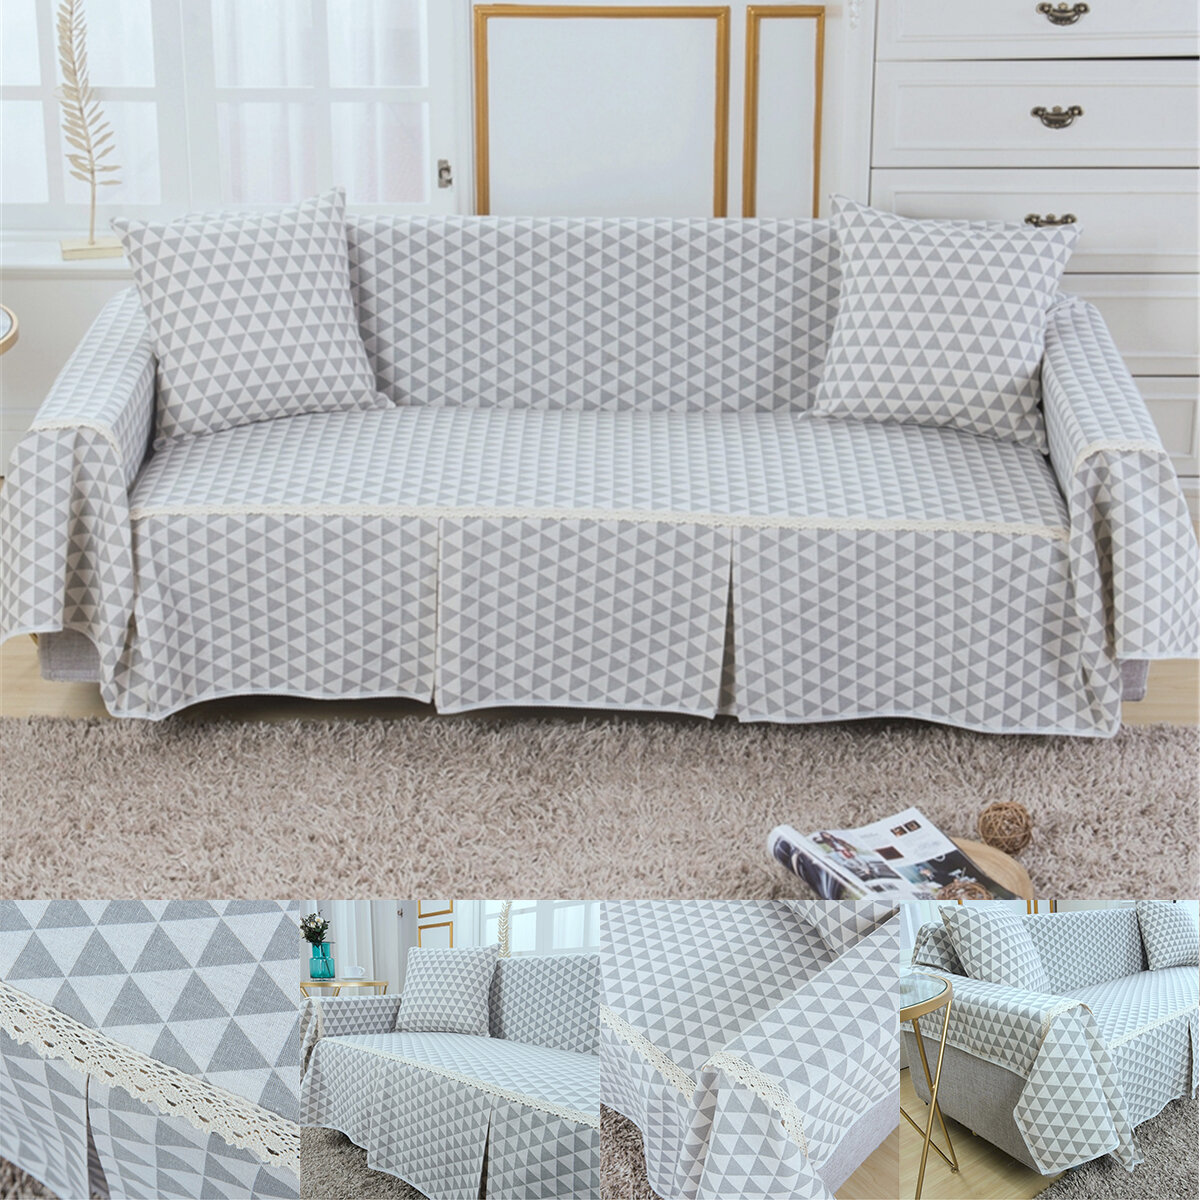 1/2/3 Seater Cotton Linen Sofa Cover Grey Blue Flower Printed Washable Fastness Sofa Seat Cover